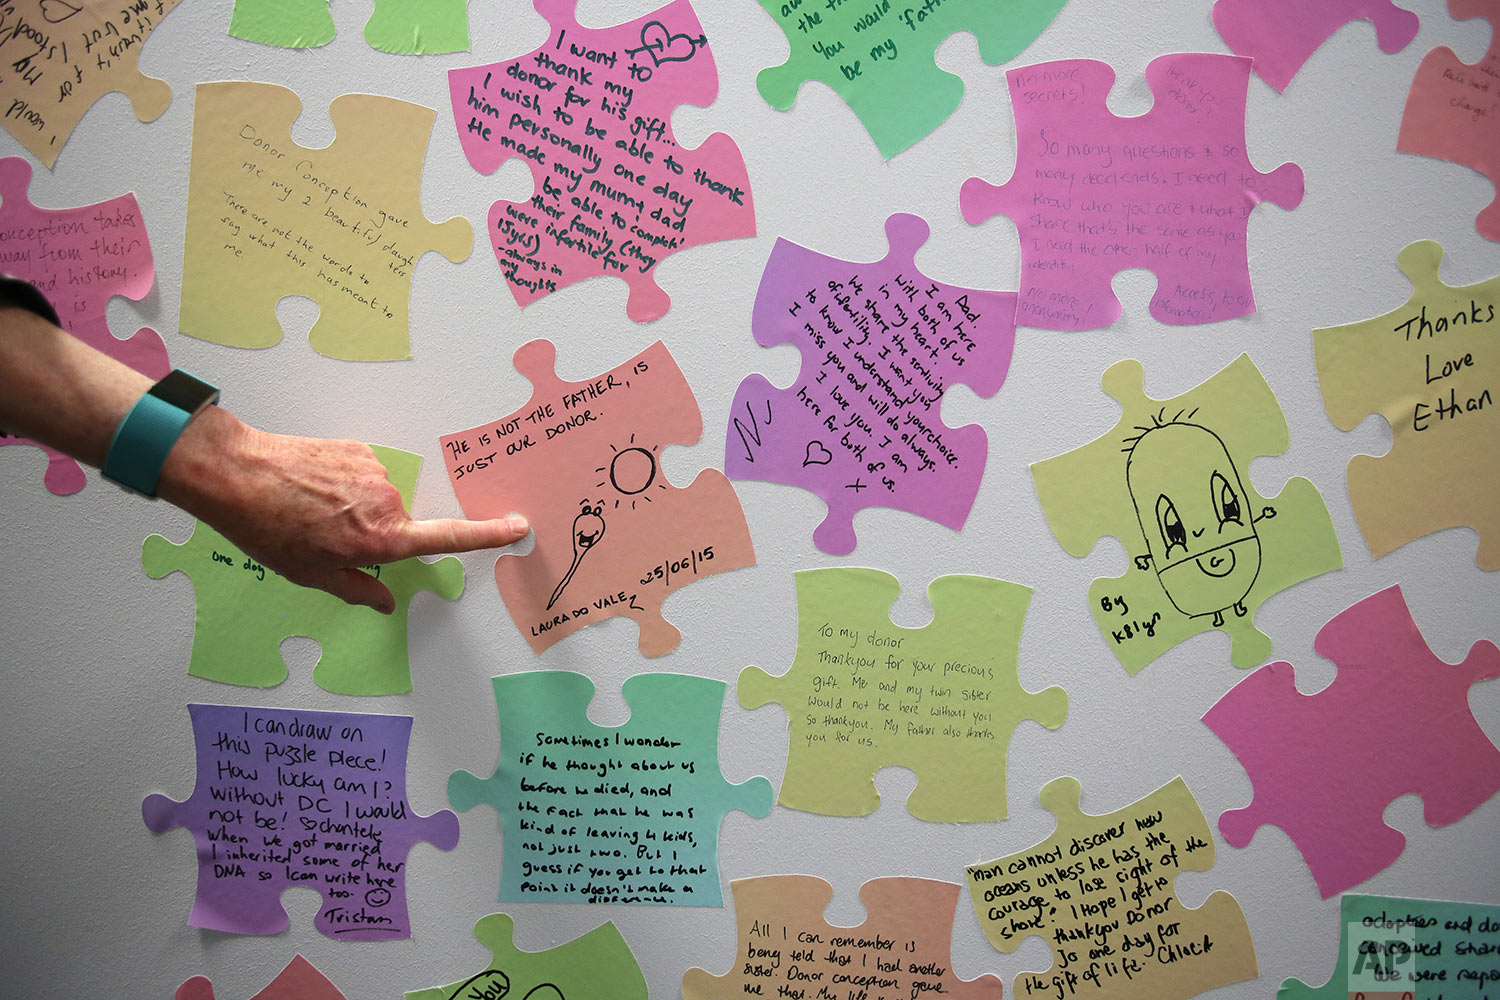 Louise Johnson, CEO of VARTA, points to a series of jigsaw puzzle-shaped stickers featuring messages written by people who were conceived as a result of sperm or egg donation. (AP Photo/Wong Maye-E)